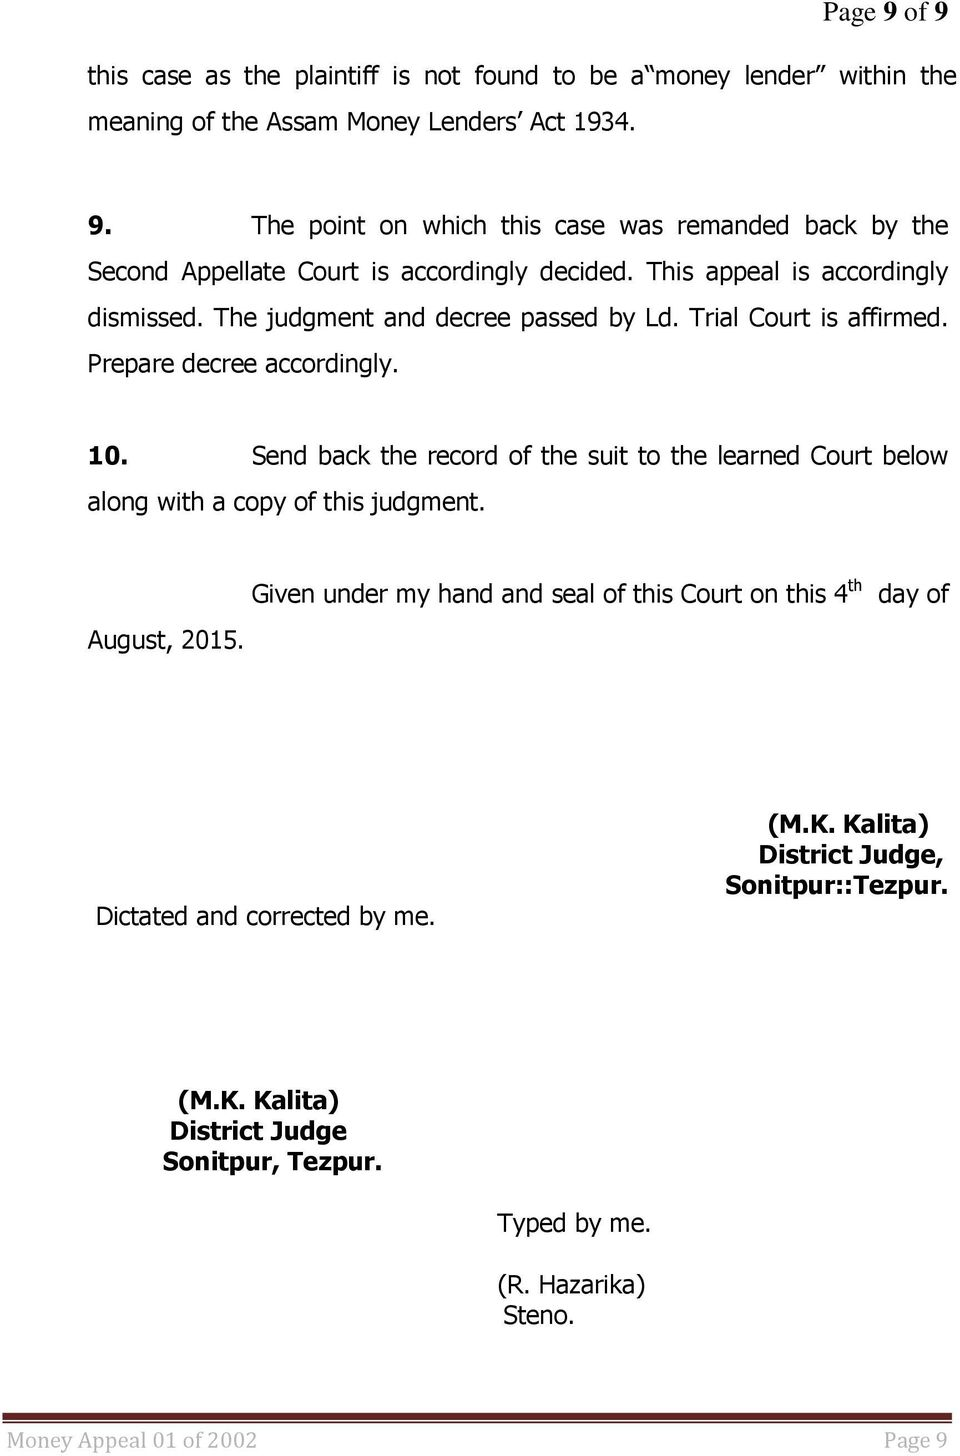 Send back the record of the suit to the learned Court below along with a copy of this judgment. August, 2015.